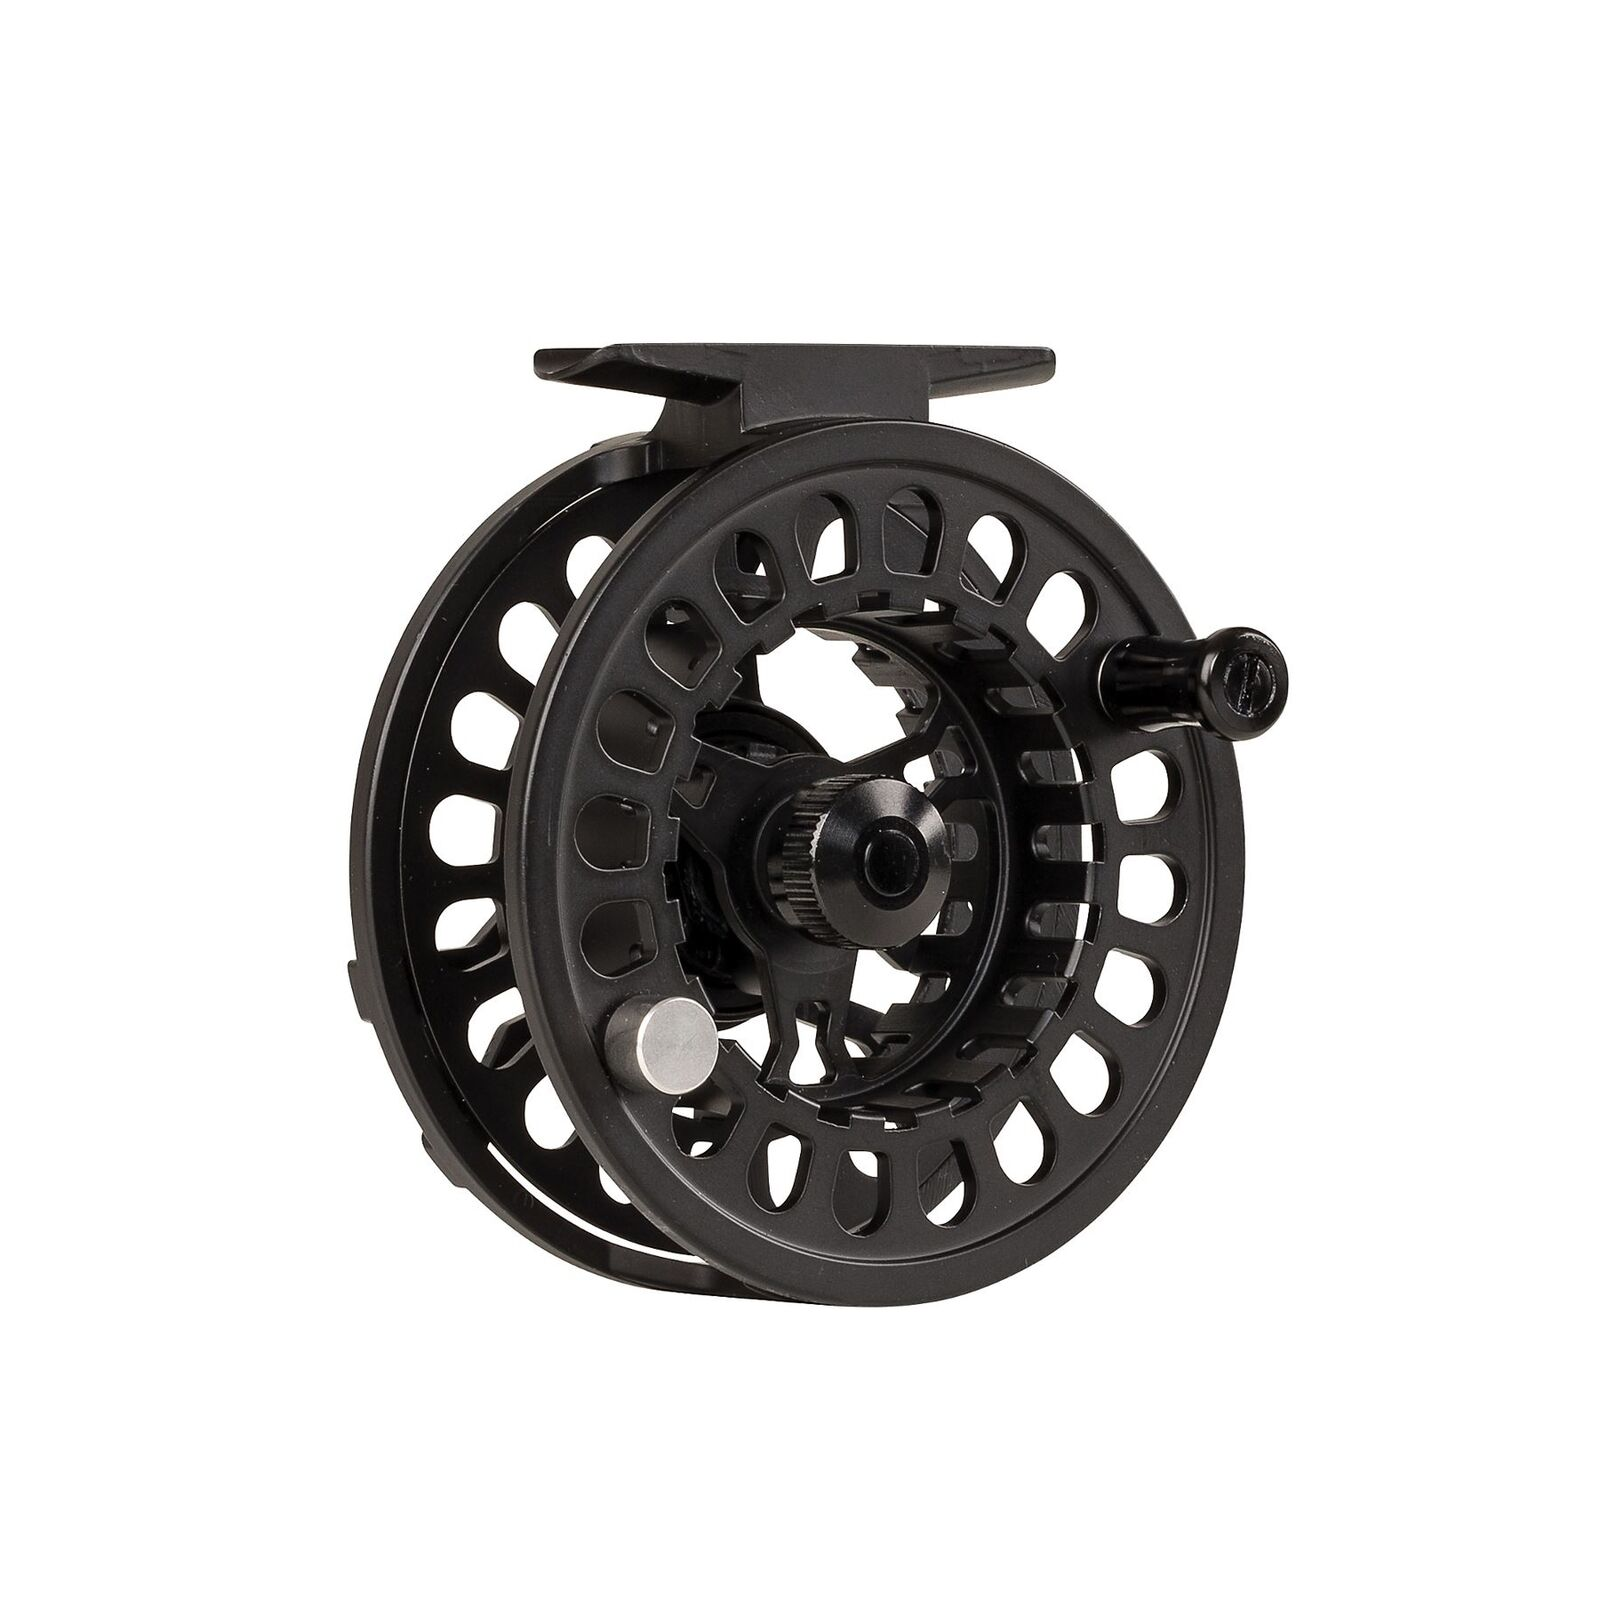 Greys GTS300  5 6    Fly Fishing Reel  first-class service